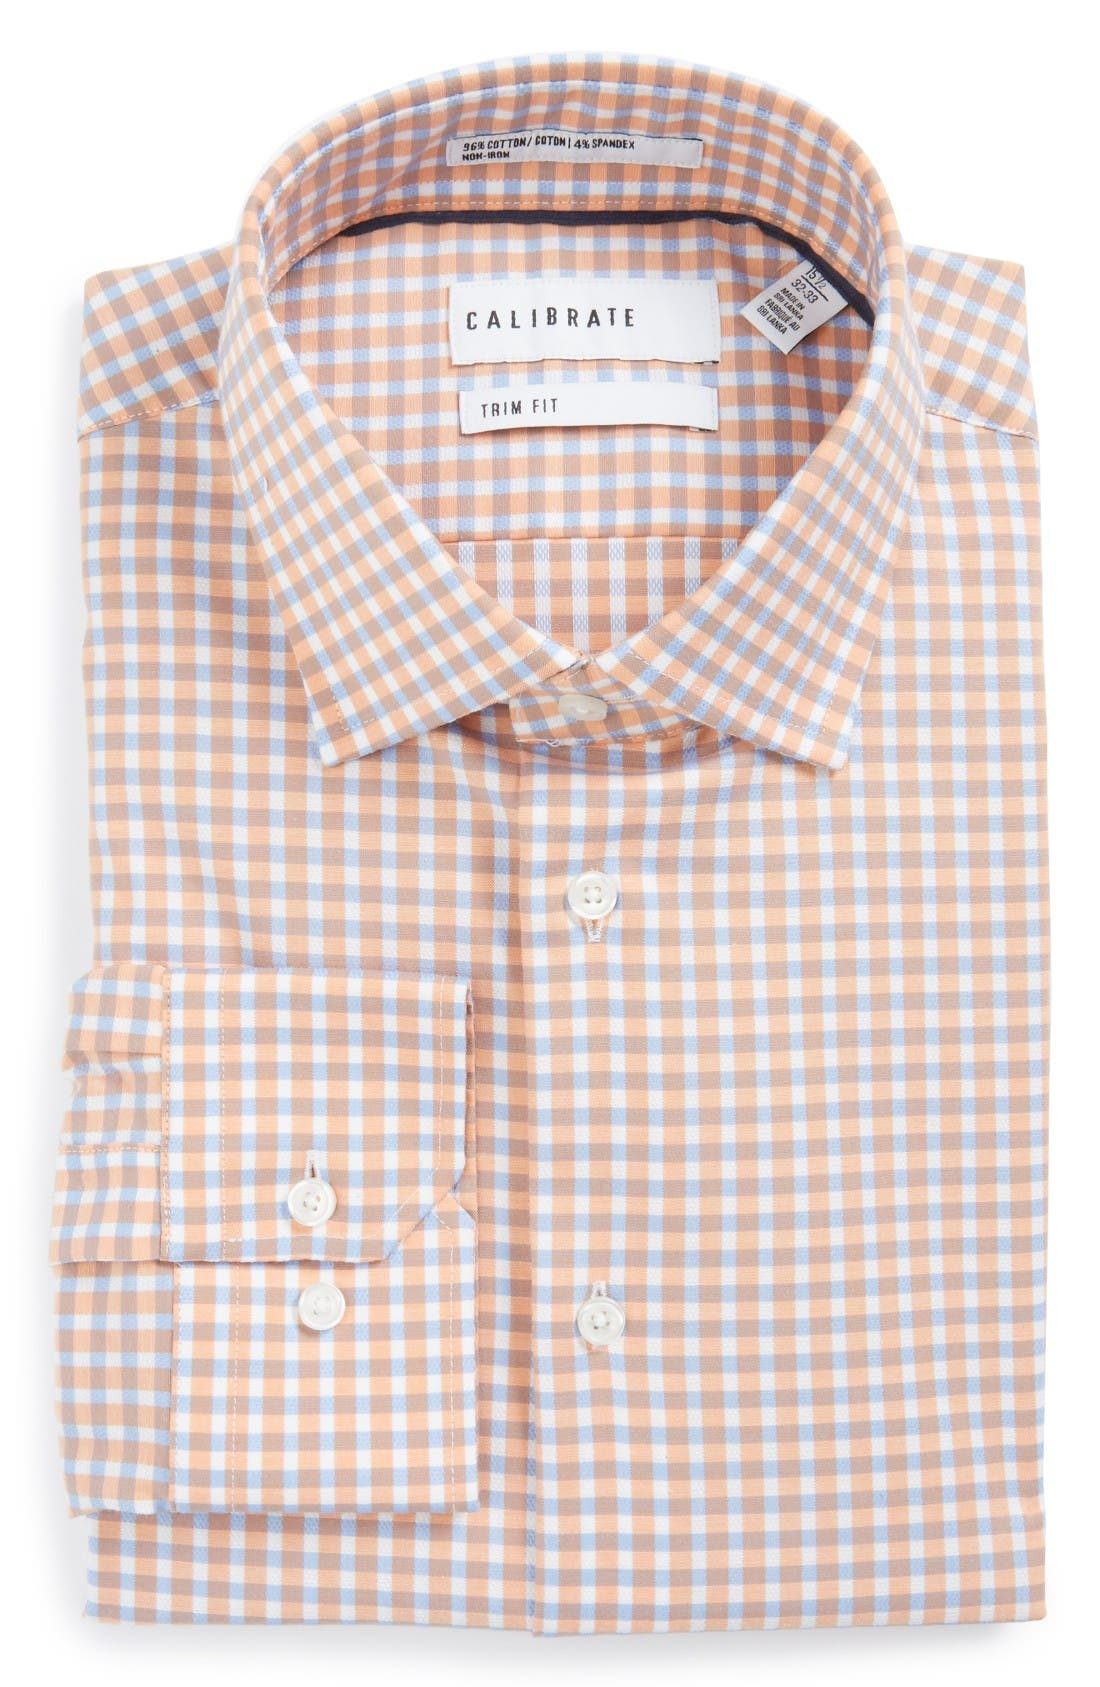 Alternate Image 1 Selected - Calibrate Trim Fit Non-Iron Check Stretch Dress Shirt